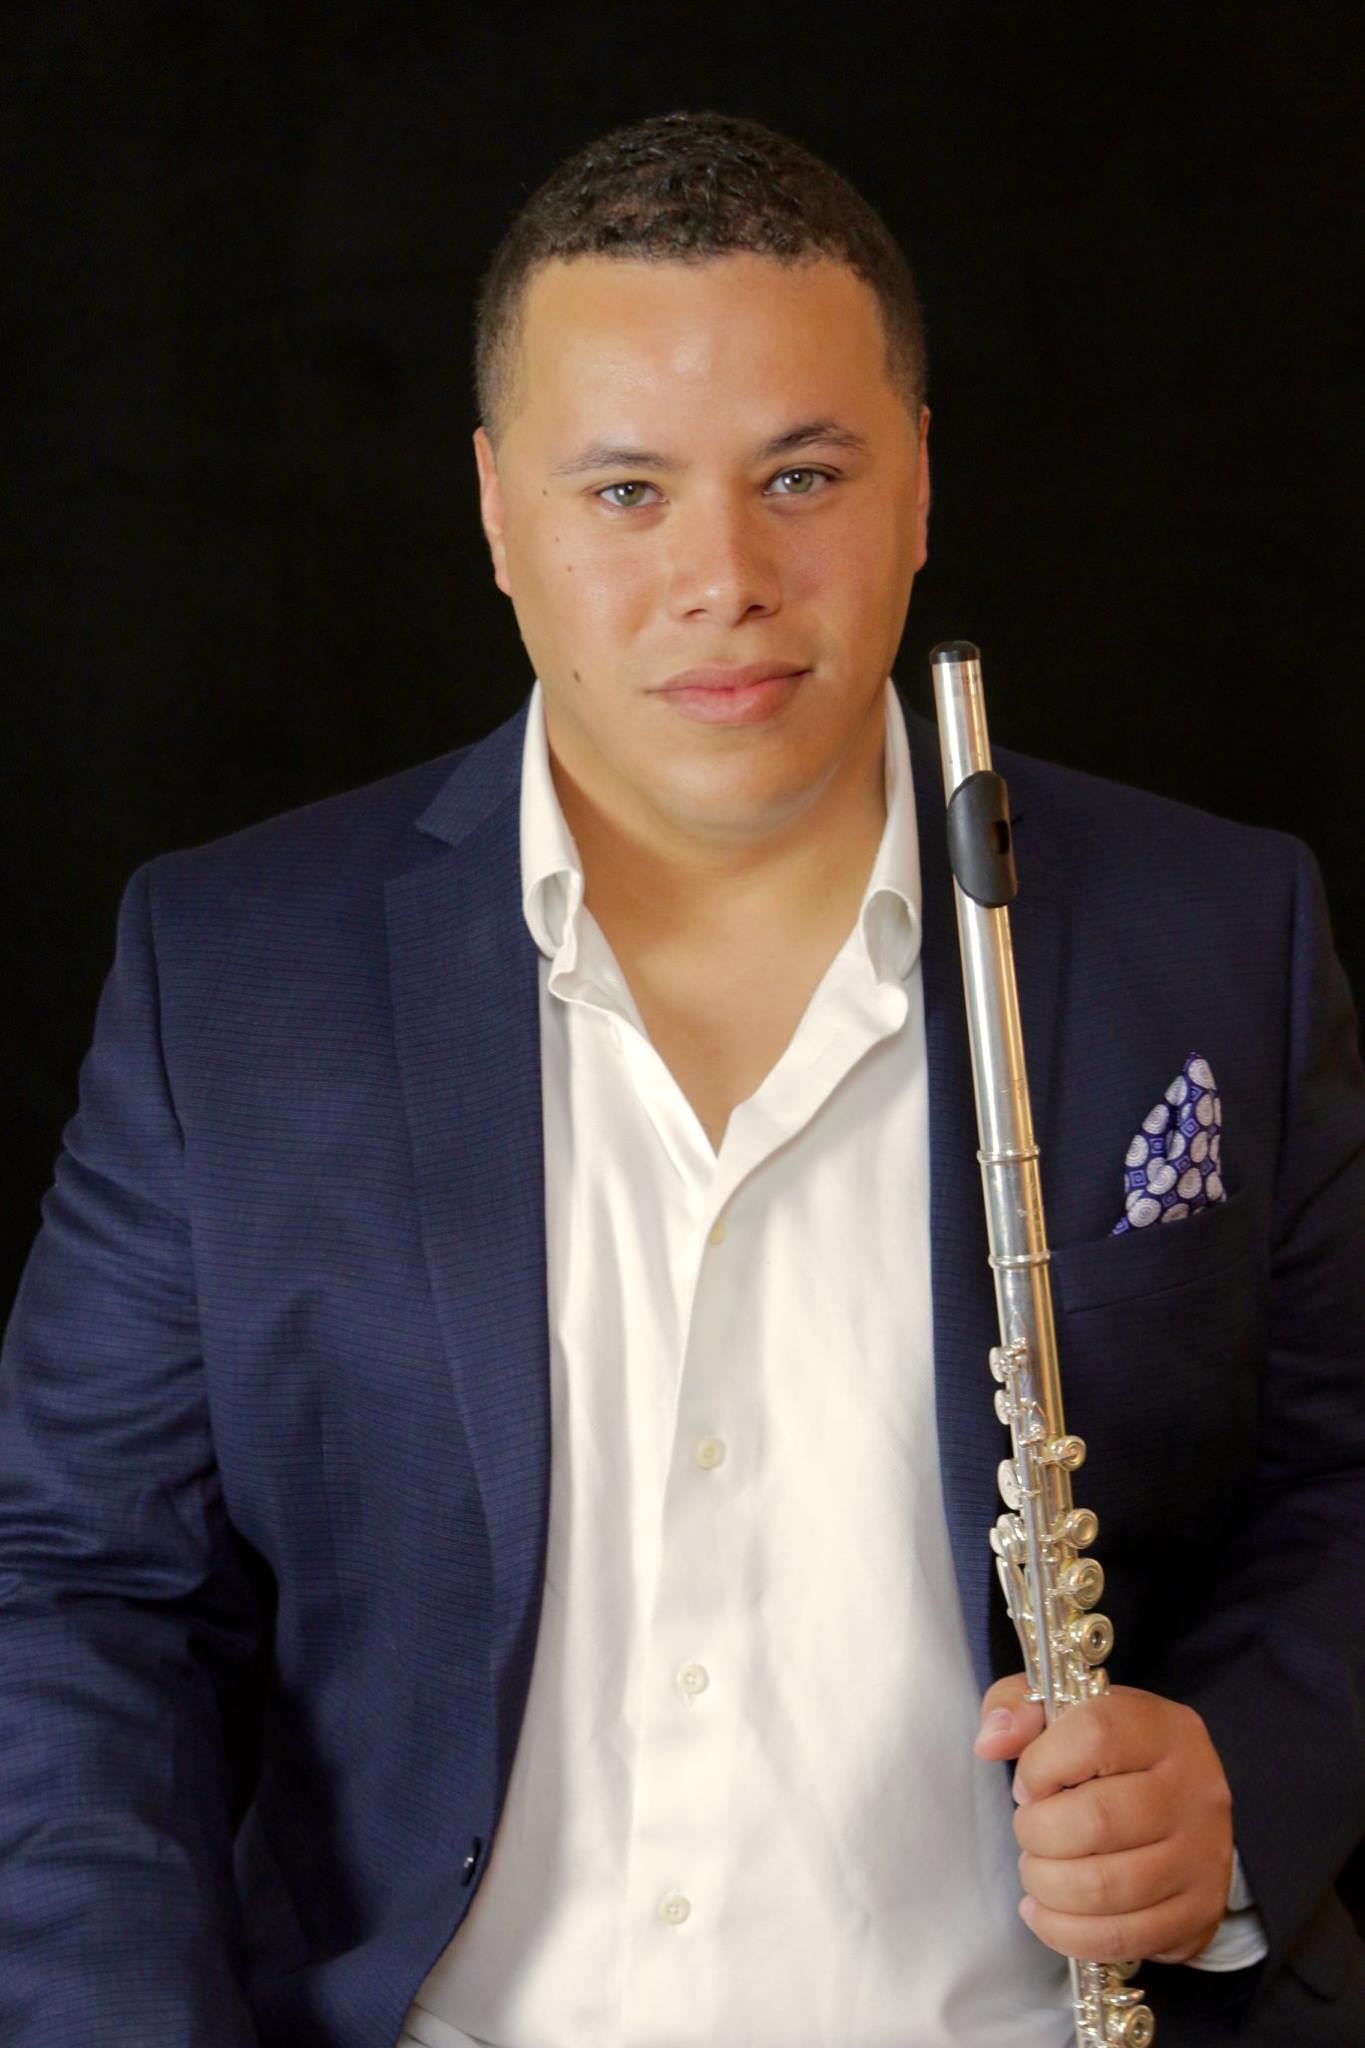 As of 2016, José Valentino is the un-precendent recipient of the most received Downbeat Student Music Awards, 42 in total.